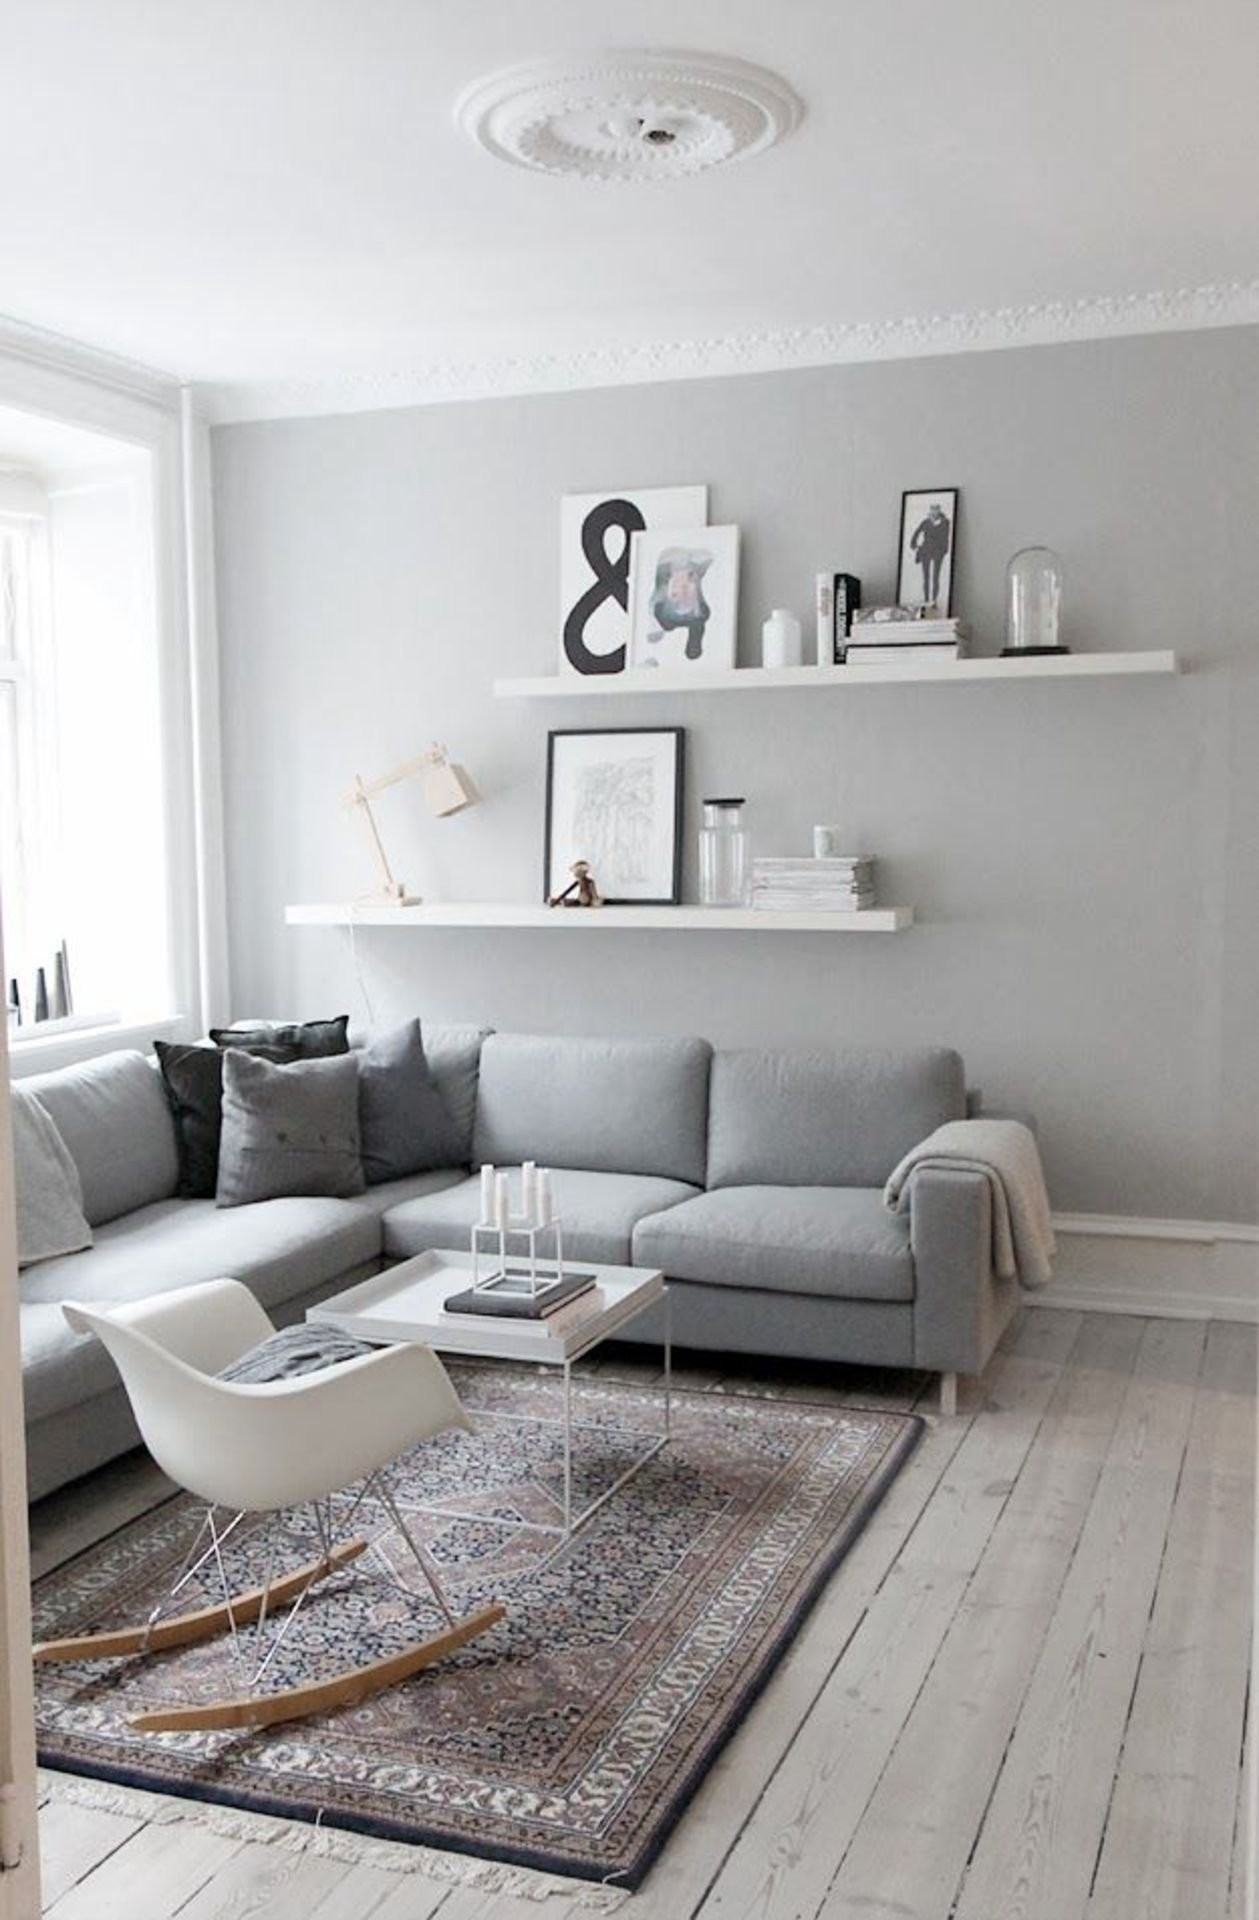 The White Living Room Furniture You Should Buy this Winter!_1 white living room furniture The White Living Room Furniture You Should Buy this Winter! The White Living Room Furniture You Should Buy this Winter 6